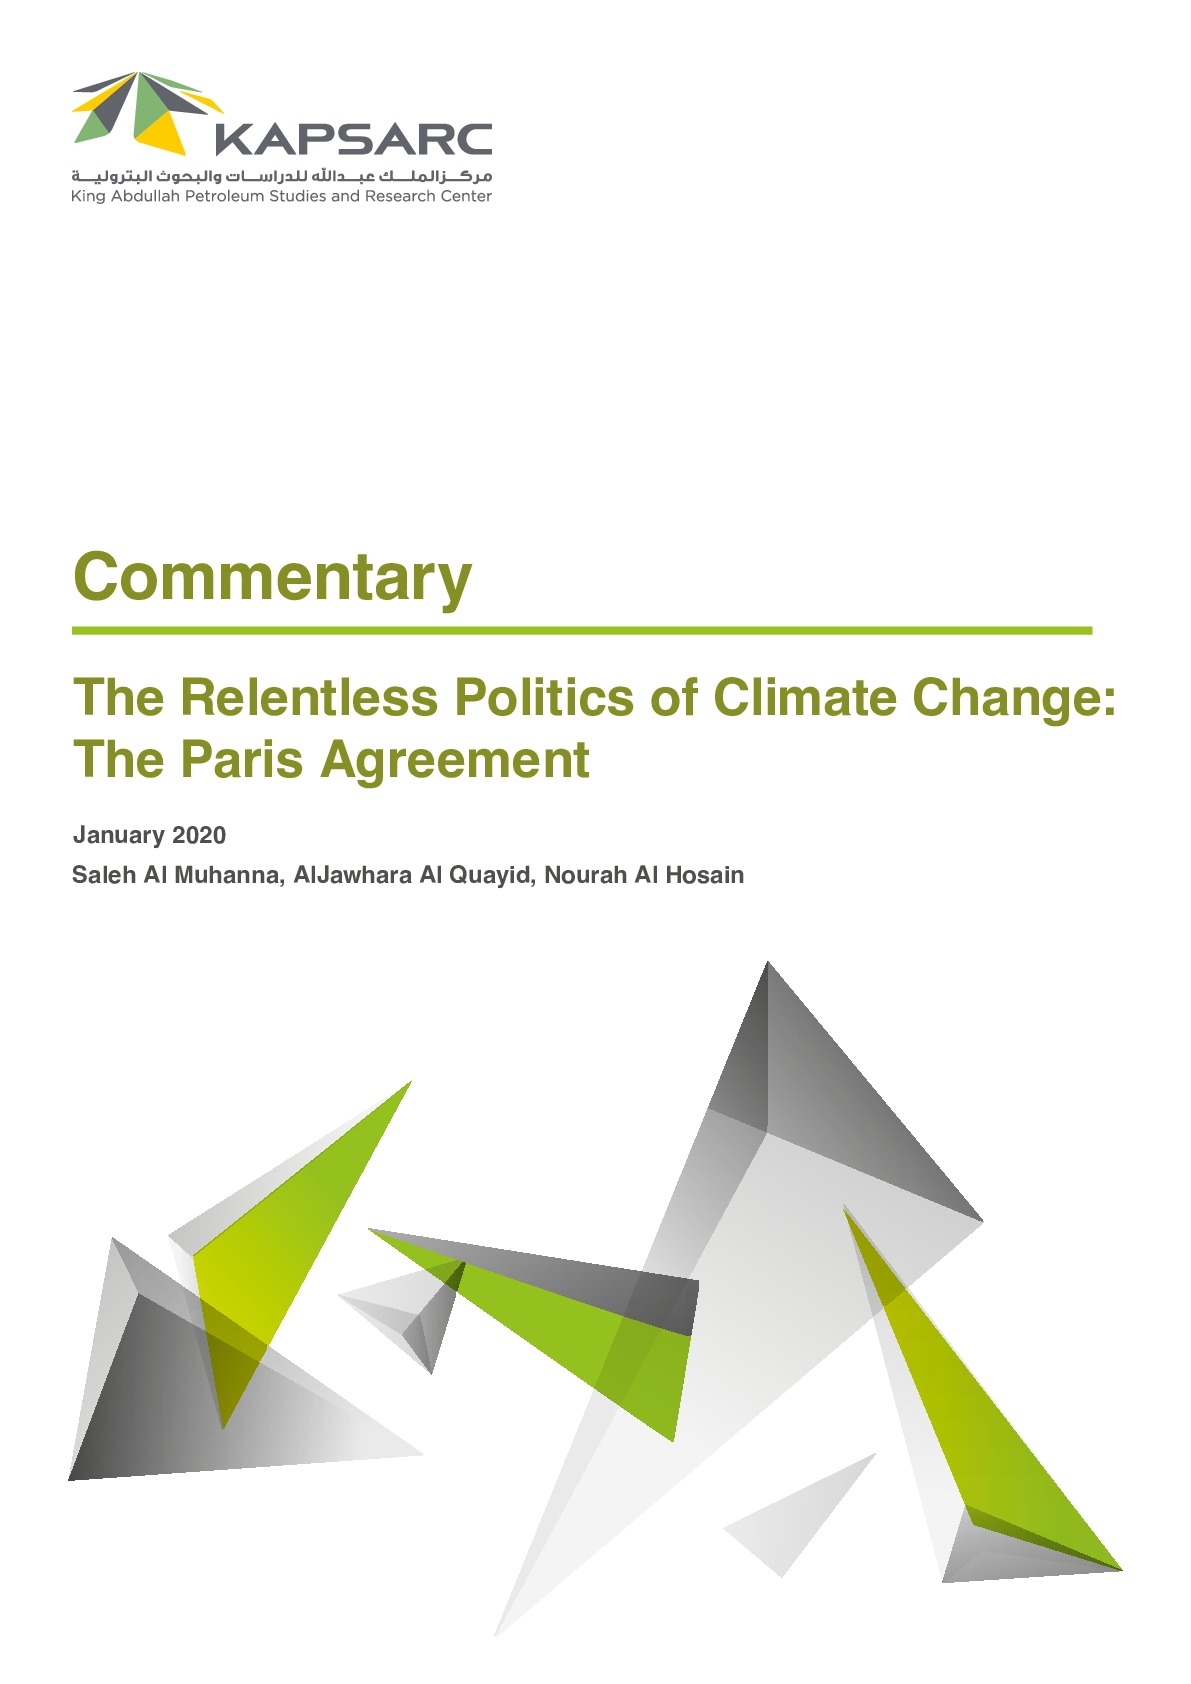 The Relentless Politics of Climate Change: The Paris Agreement